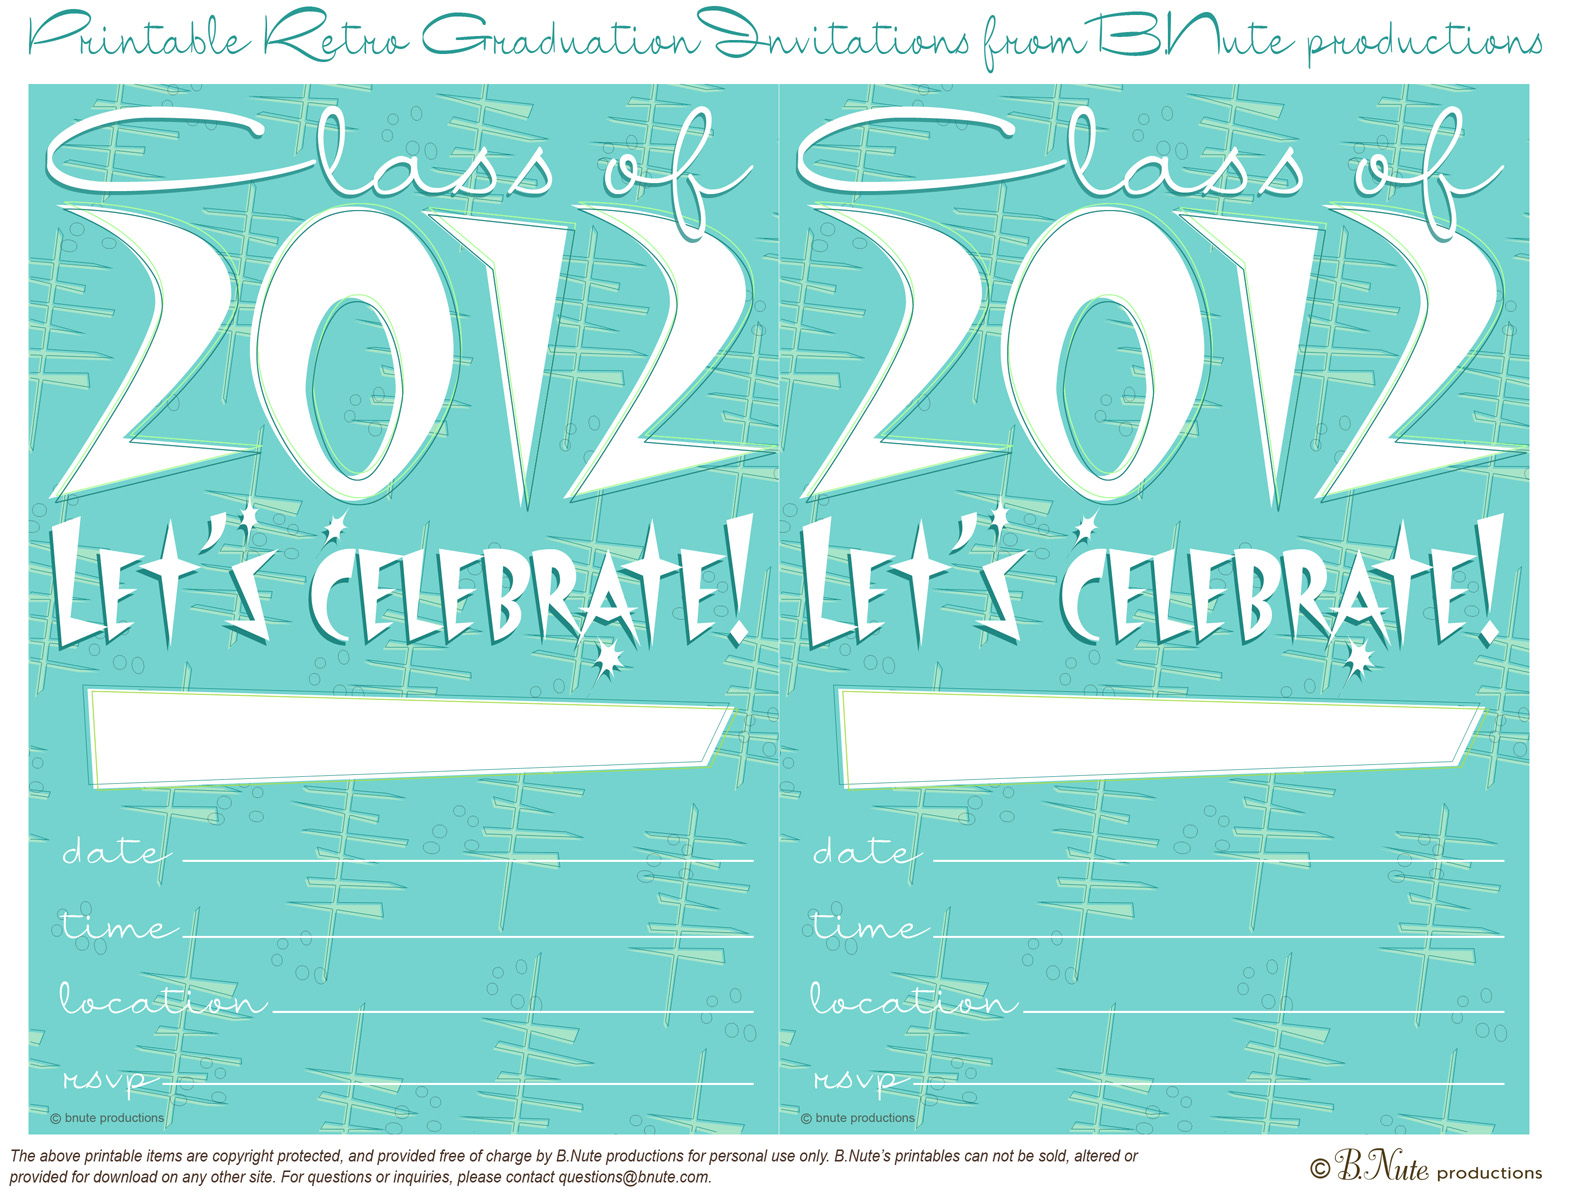 bnute productions: Free Retro Graduation Party Invitations and ...